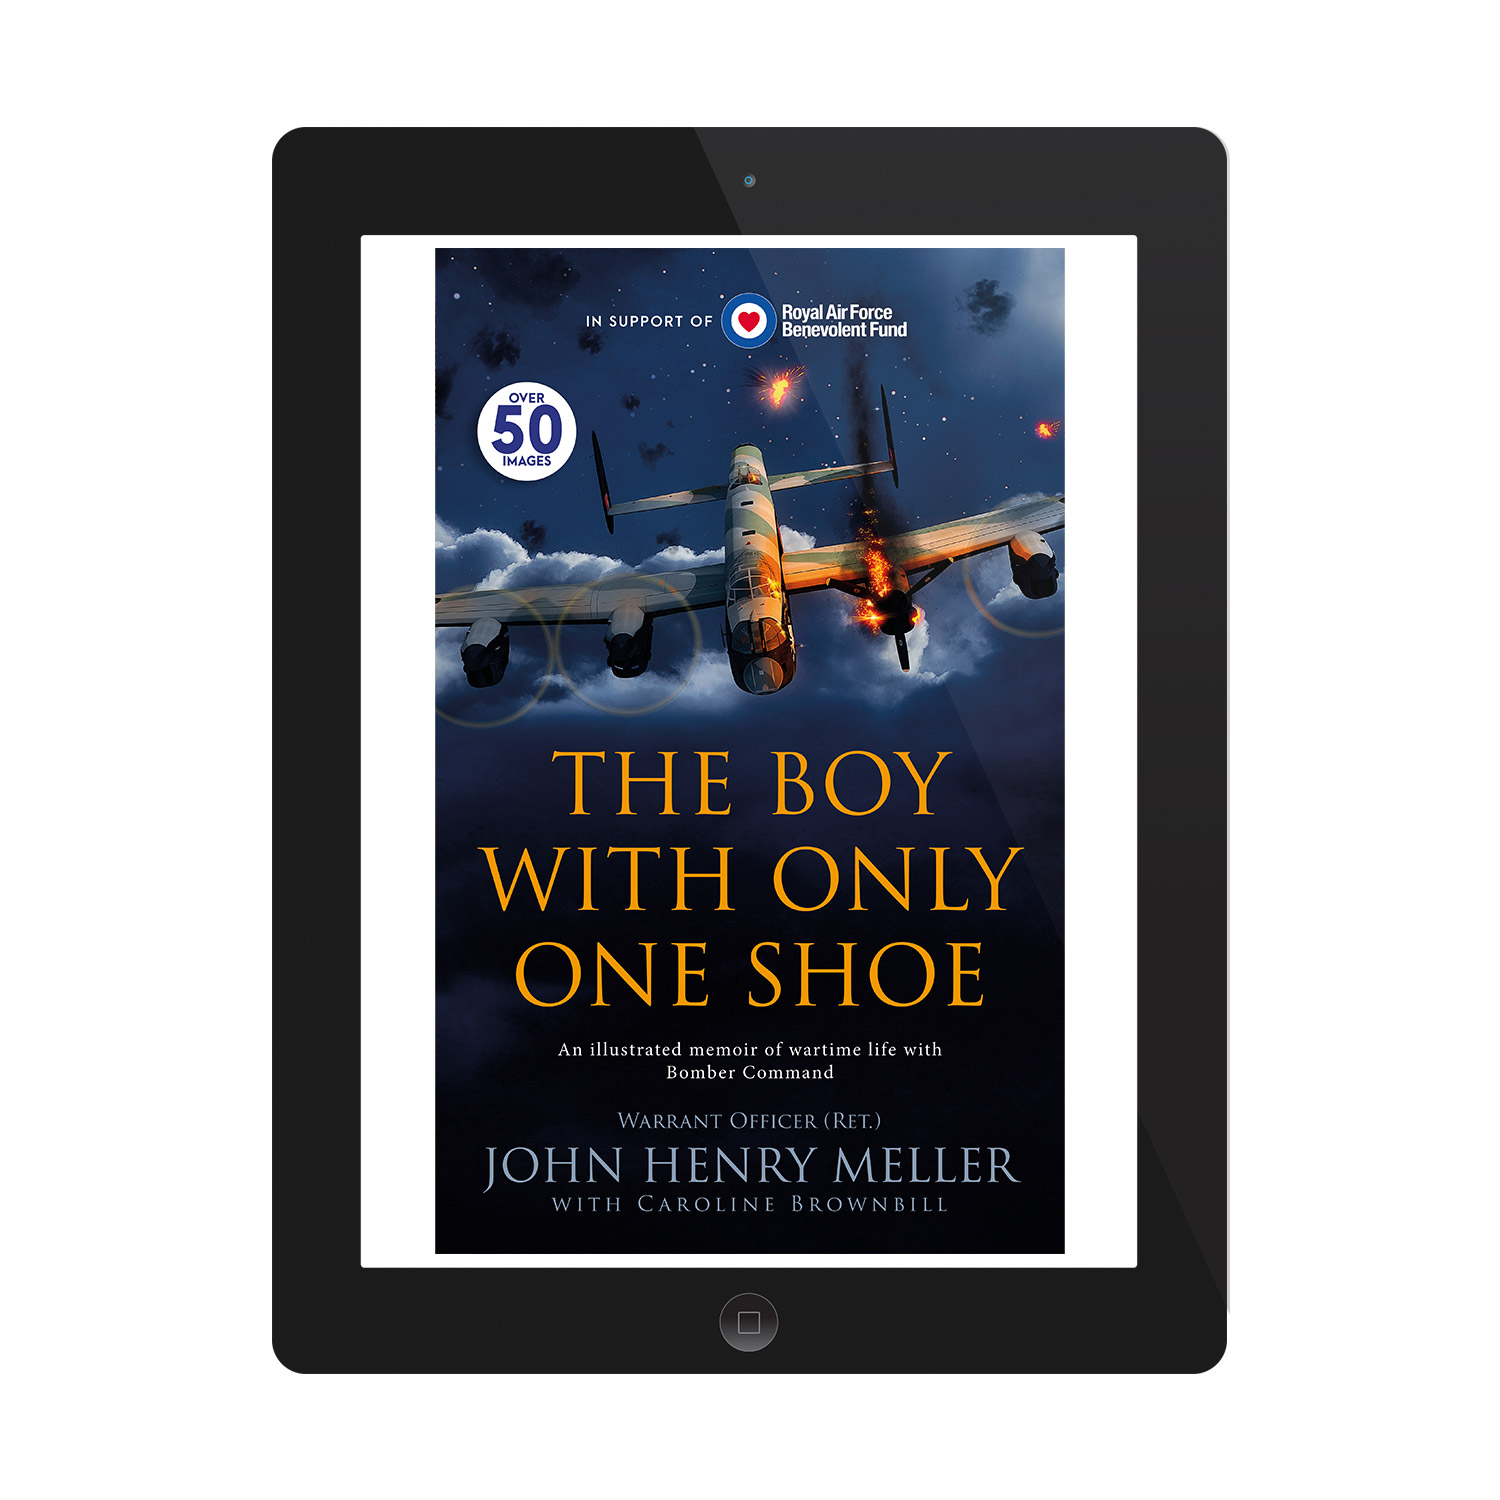 'The Boy With Only One Shoe' is a vivid and affecting memoir of life in RAF Bomber Command during WW2. The authors are John Henry Meller and Caroline Brownbill. The book cover design and interior formatting are by Mark Thomas. To learn more about what Mark could do for your book, please visit coverness.com.